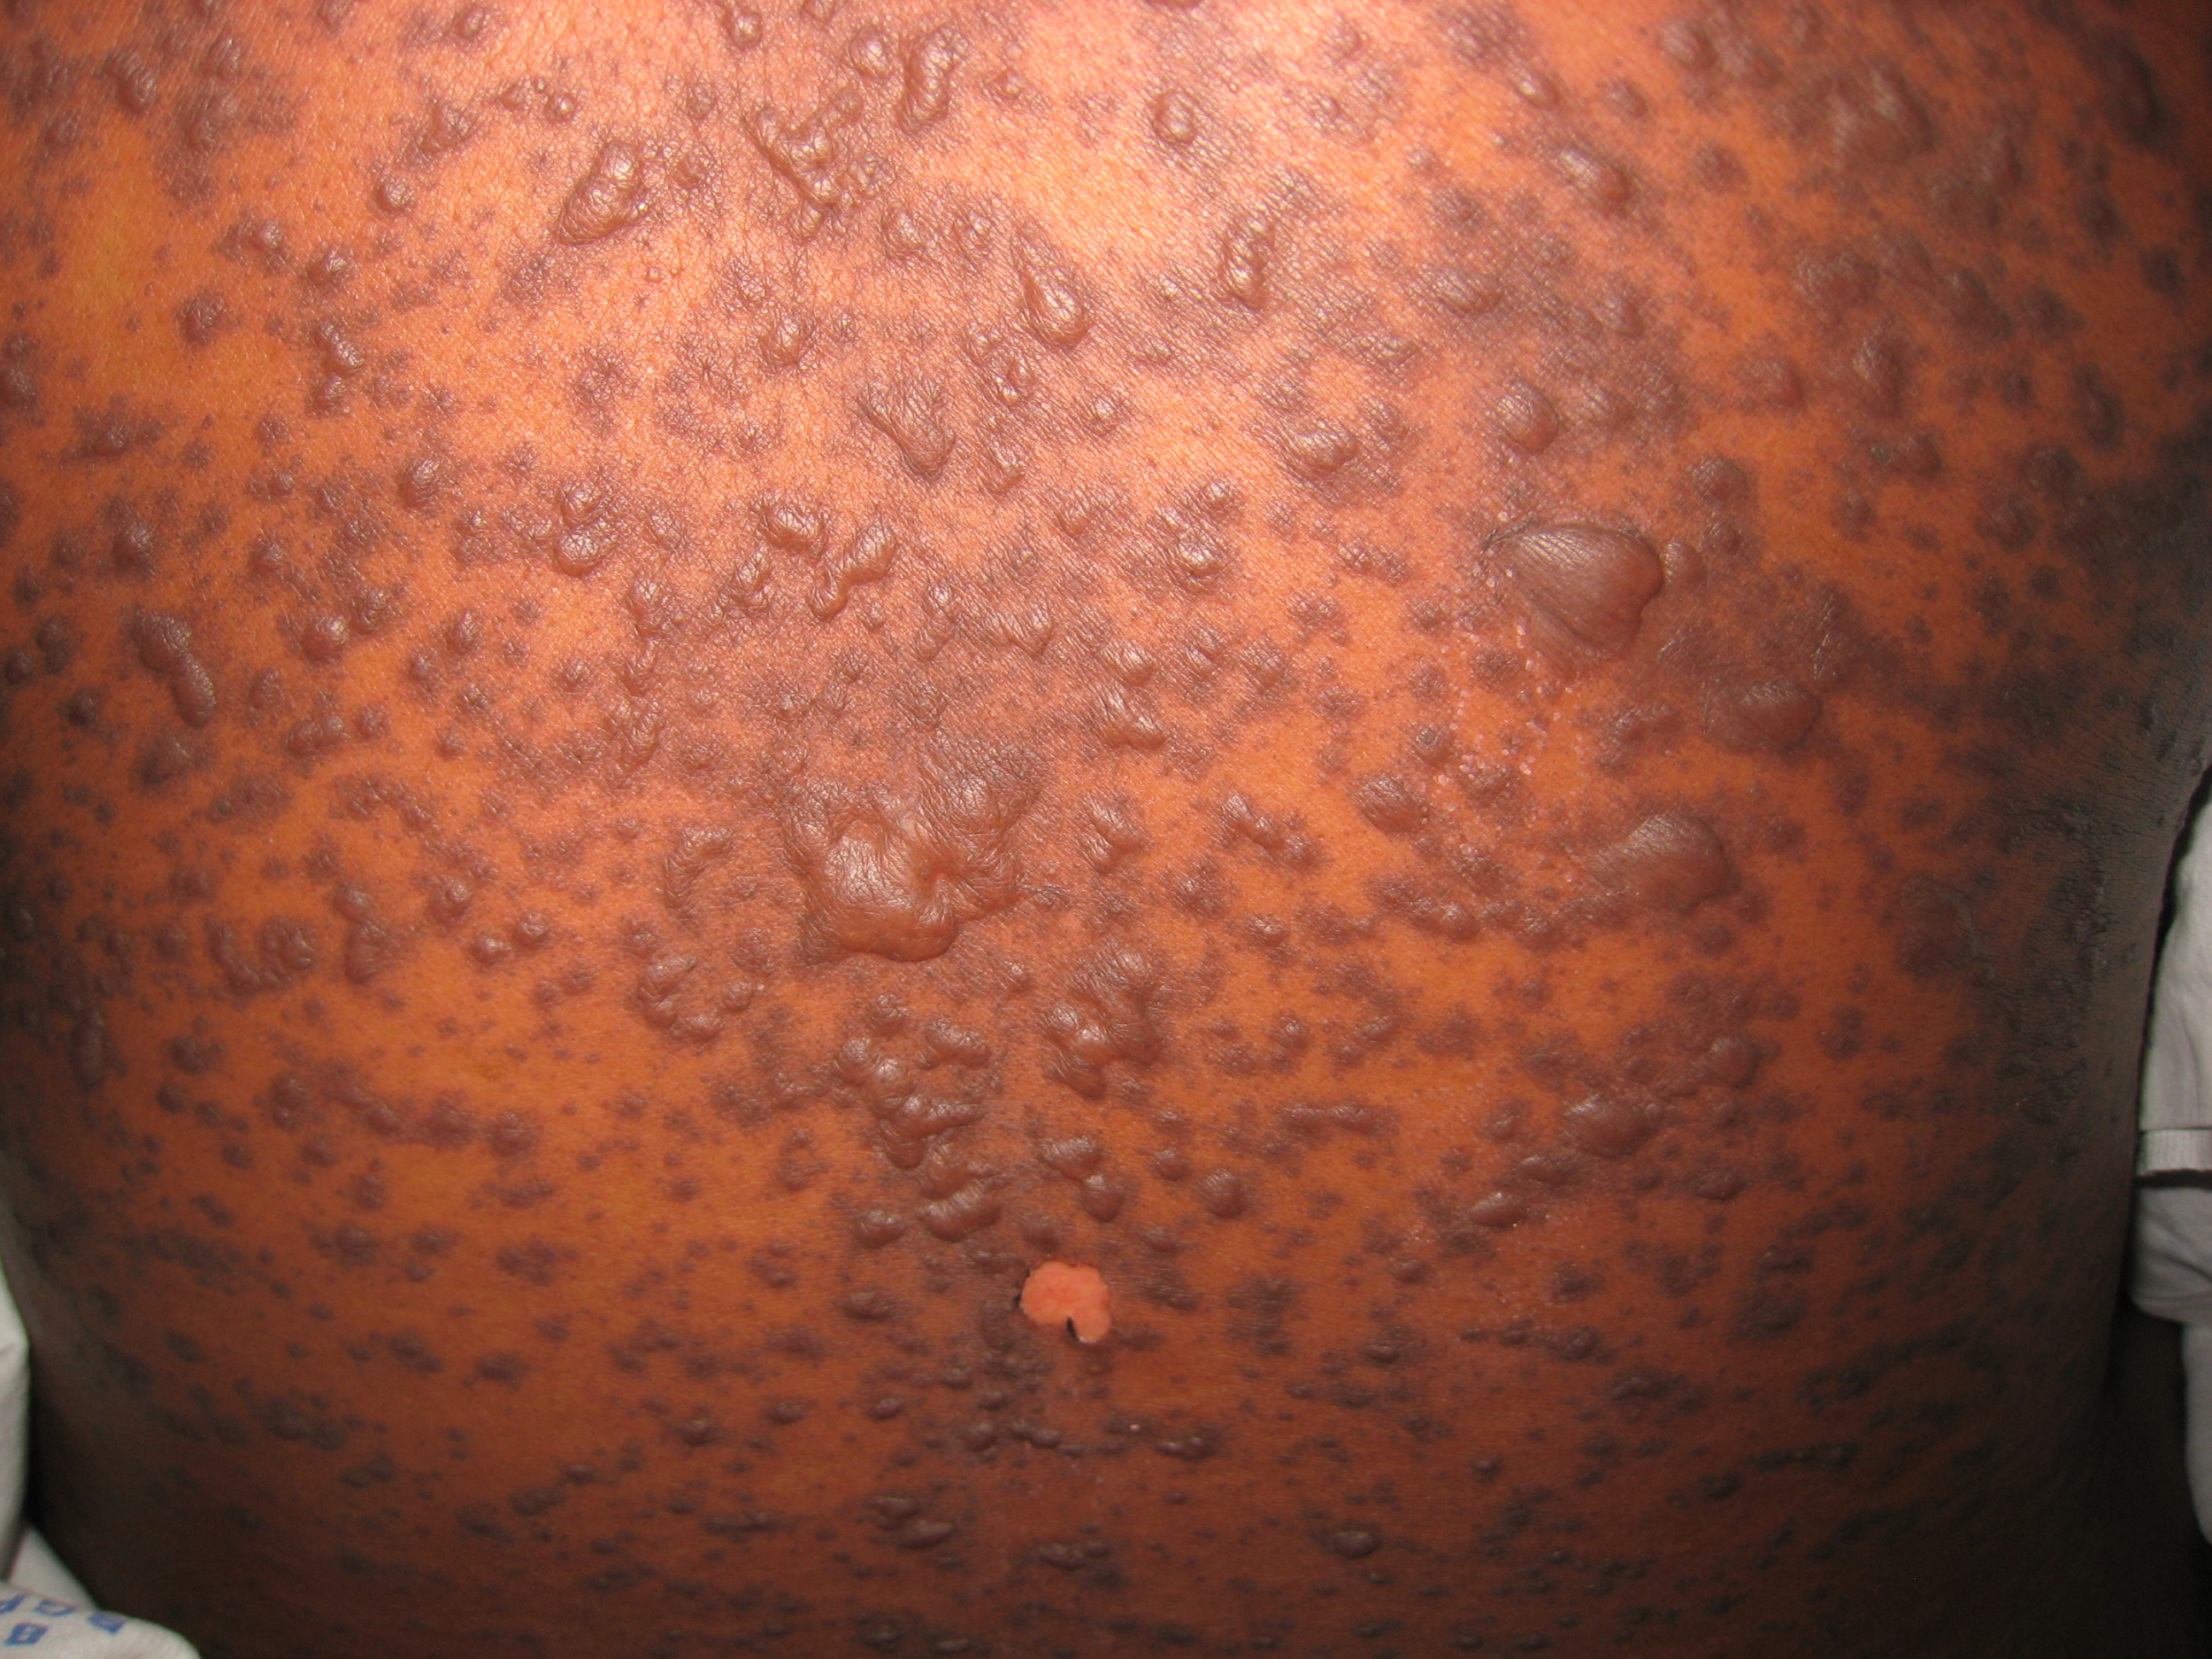 toxic epidermal necrolysis Toxic epidermal necrolysis as a cause of symptoms or medical conditions when considering symptoms of toxic epidermal necrolysis , it is also important to consider toxic epidermal necrolysis as a possible cause of other medical conditions.